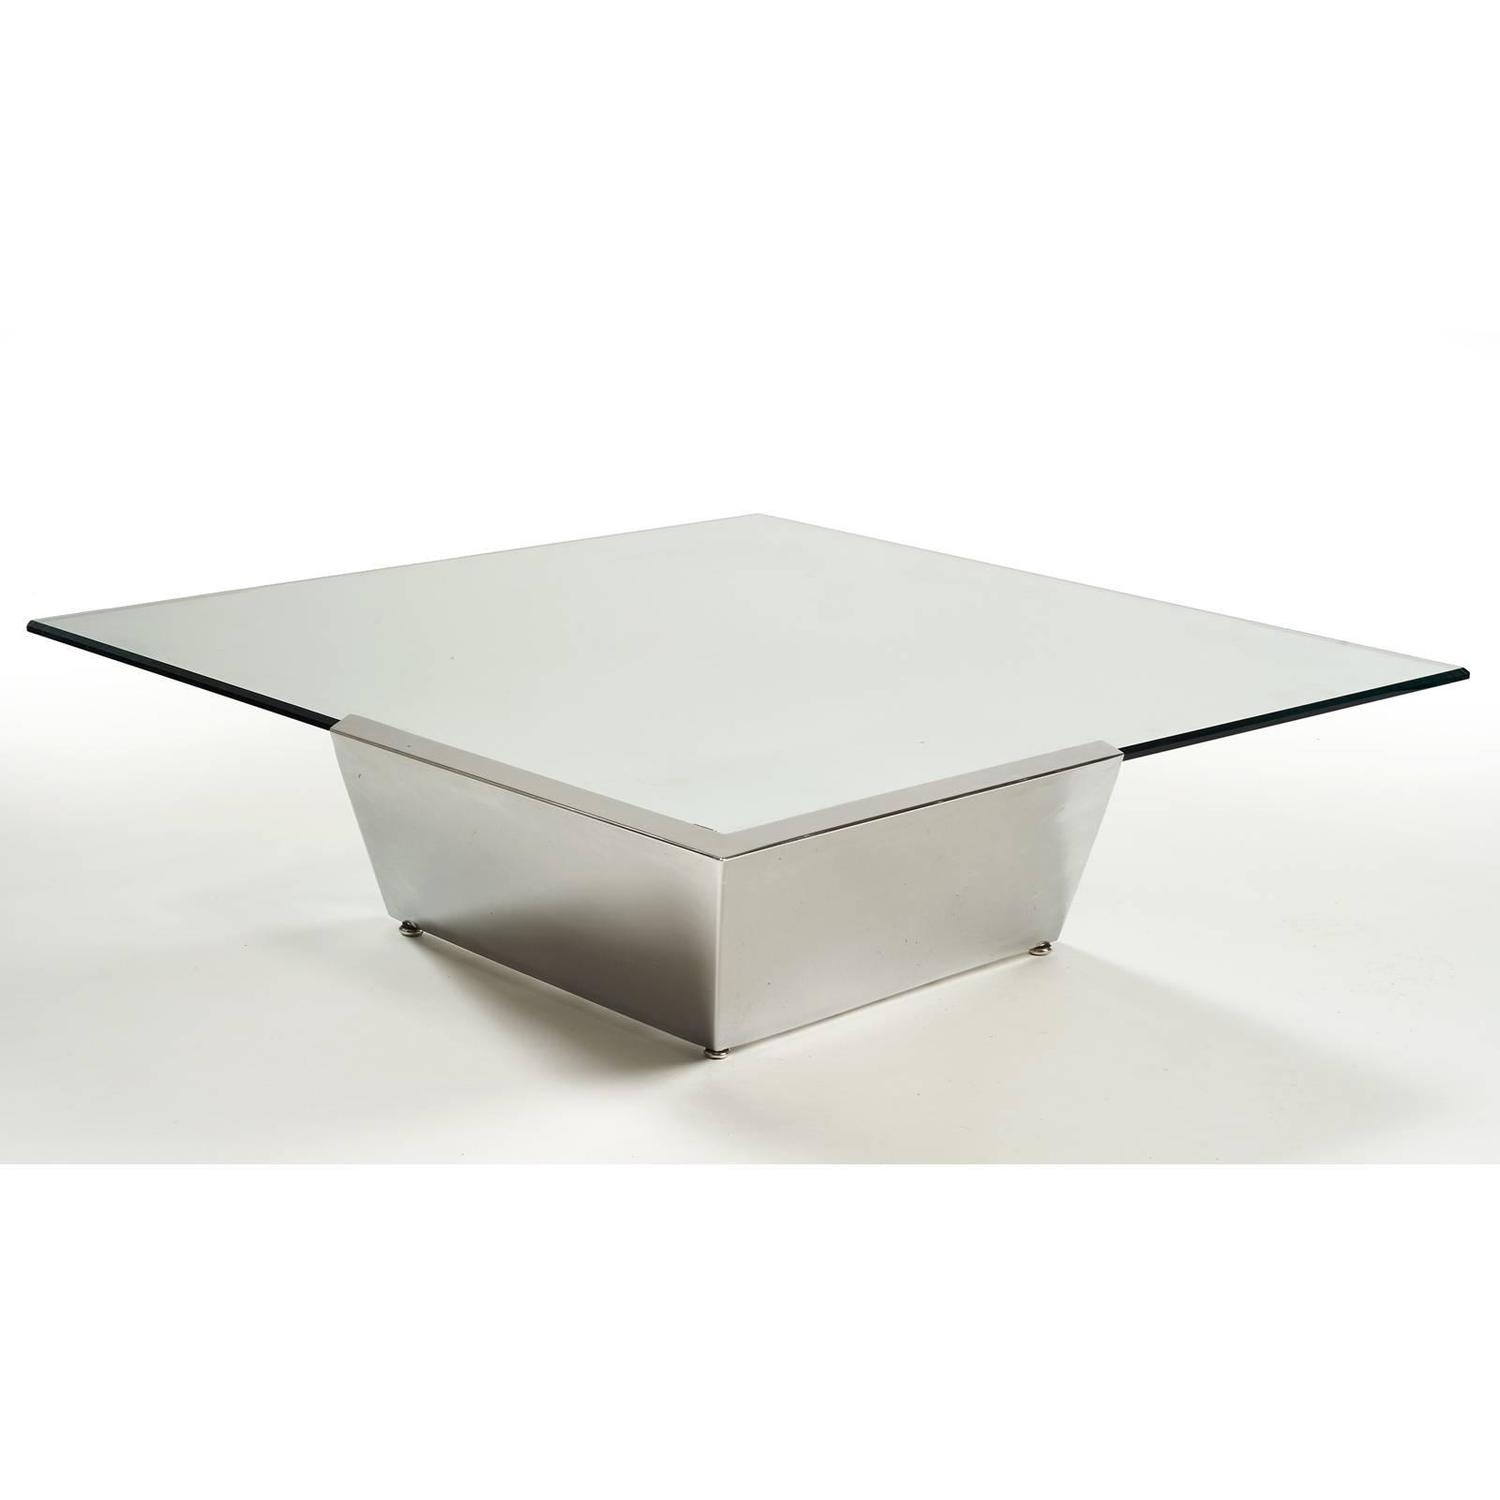 Stunning Late 1970s Brueton Cantilever Coffee Table For Sale At 1stdibs